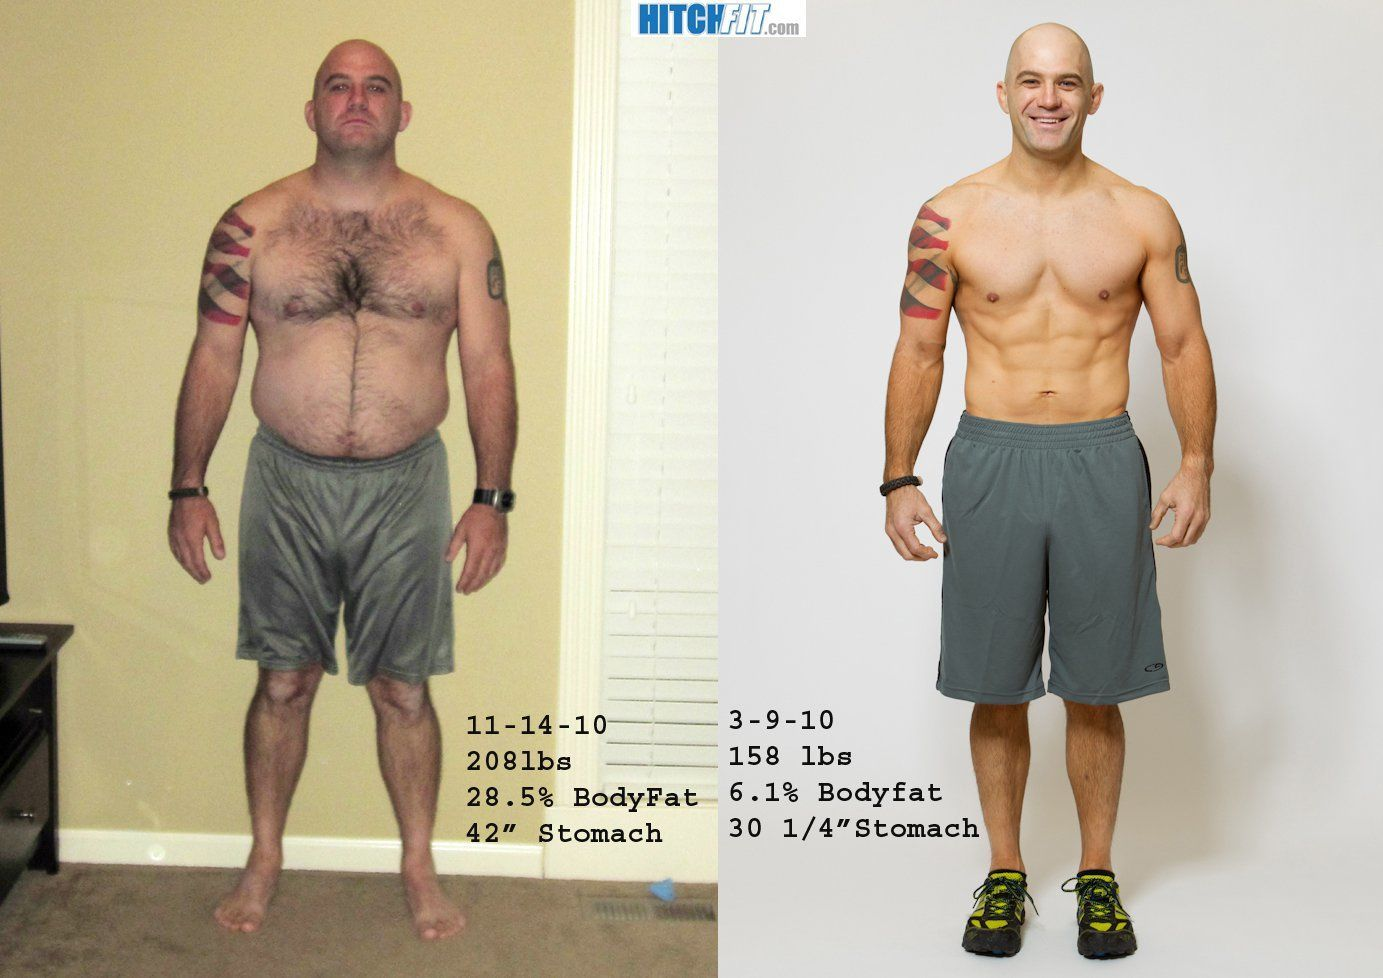 Best Quality 50 Pound Weight Loss Before After 1383 X 978 155 KB Jpeg